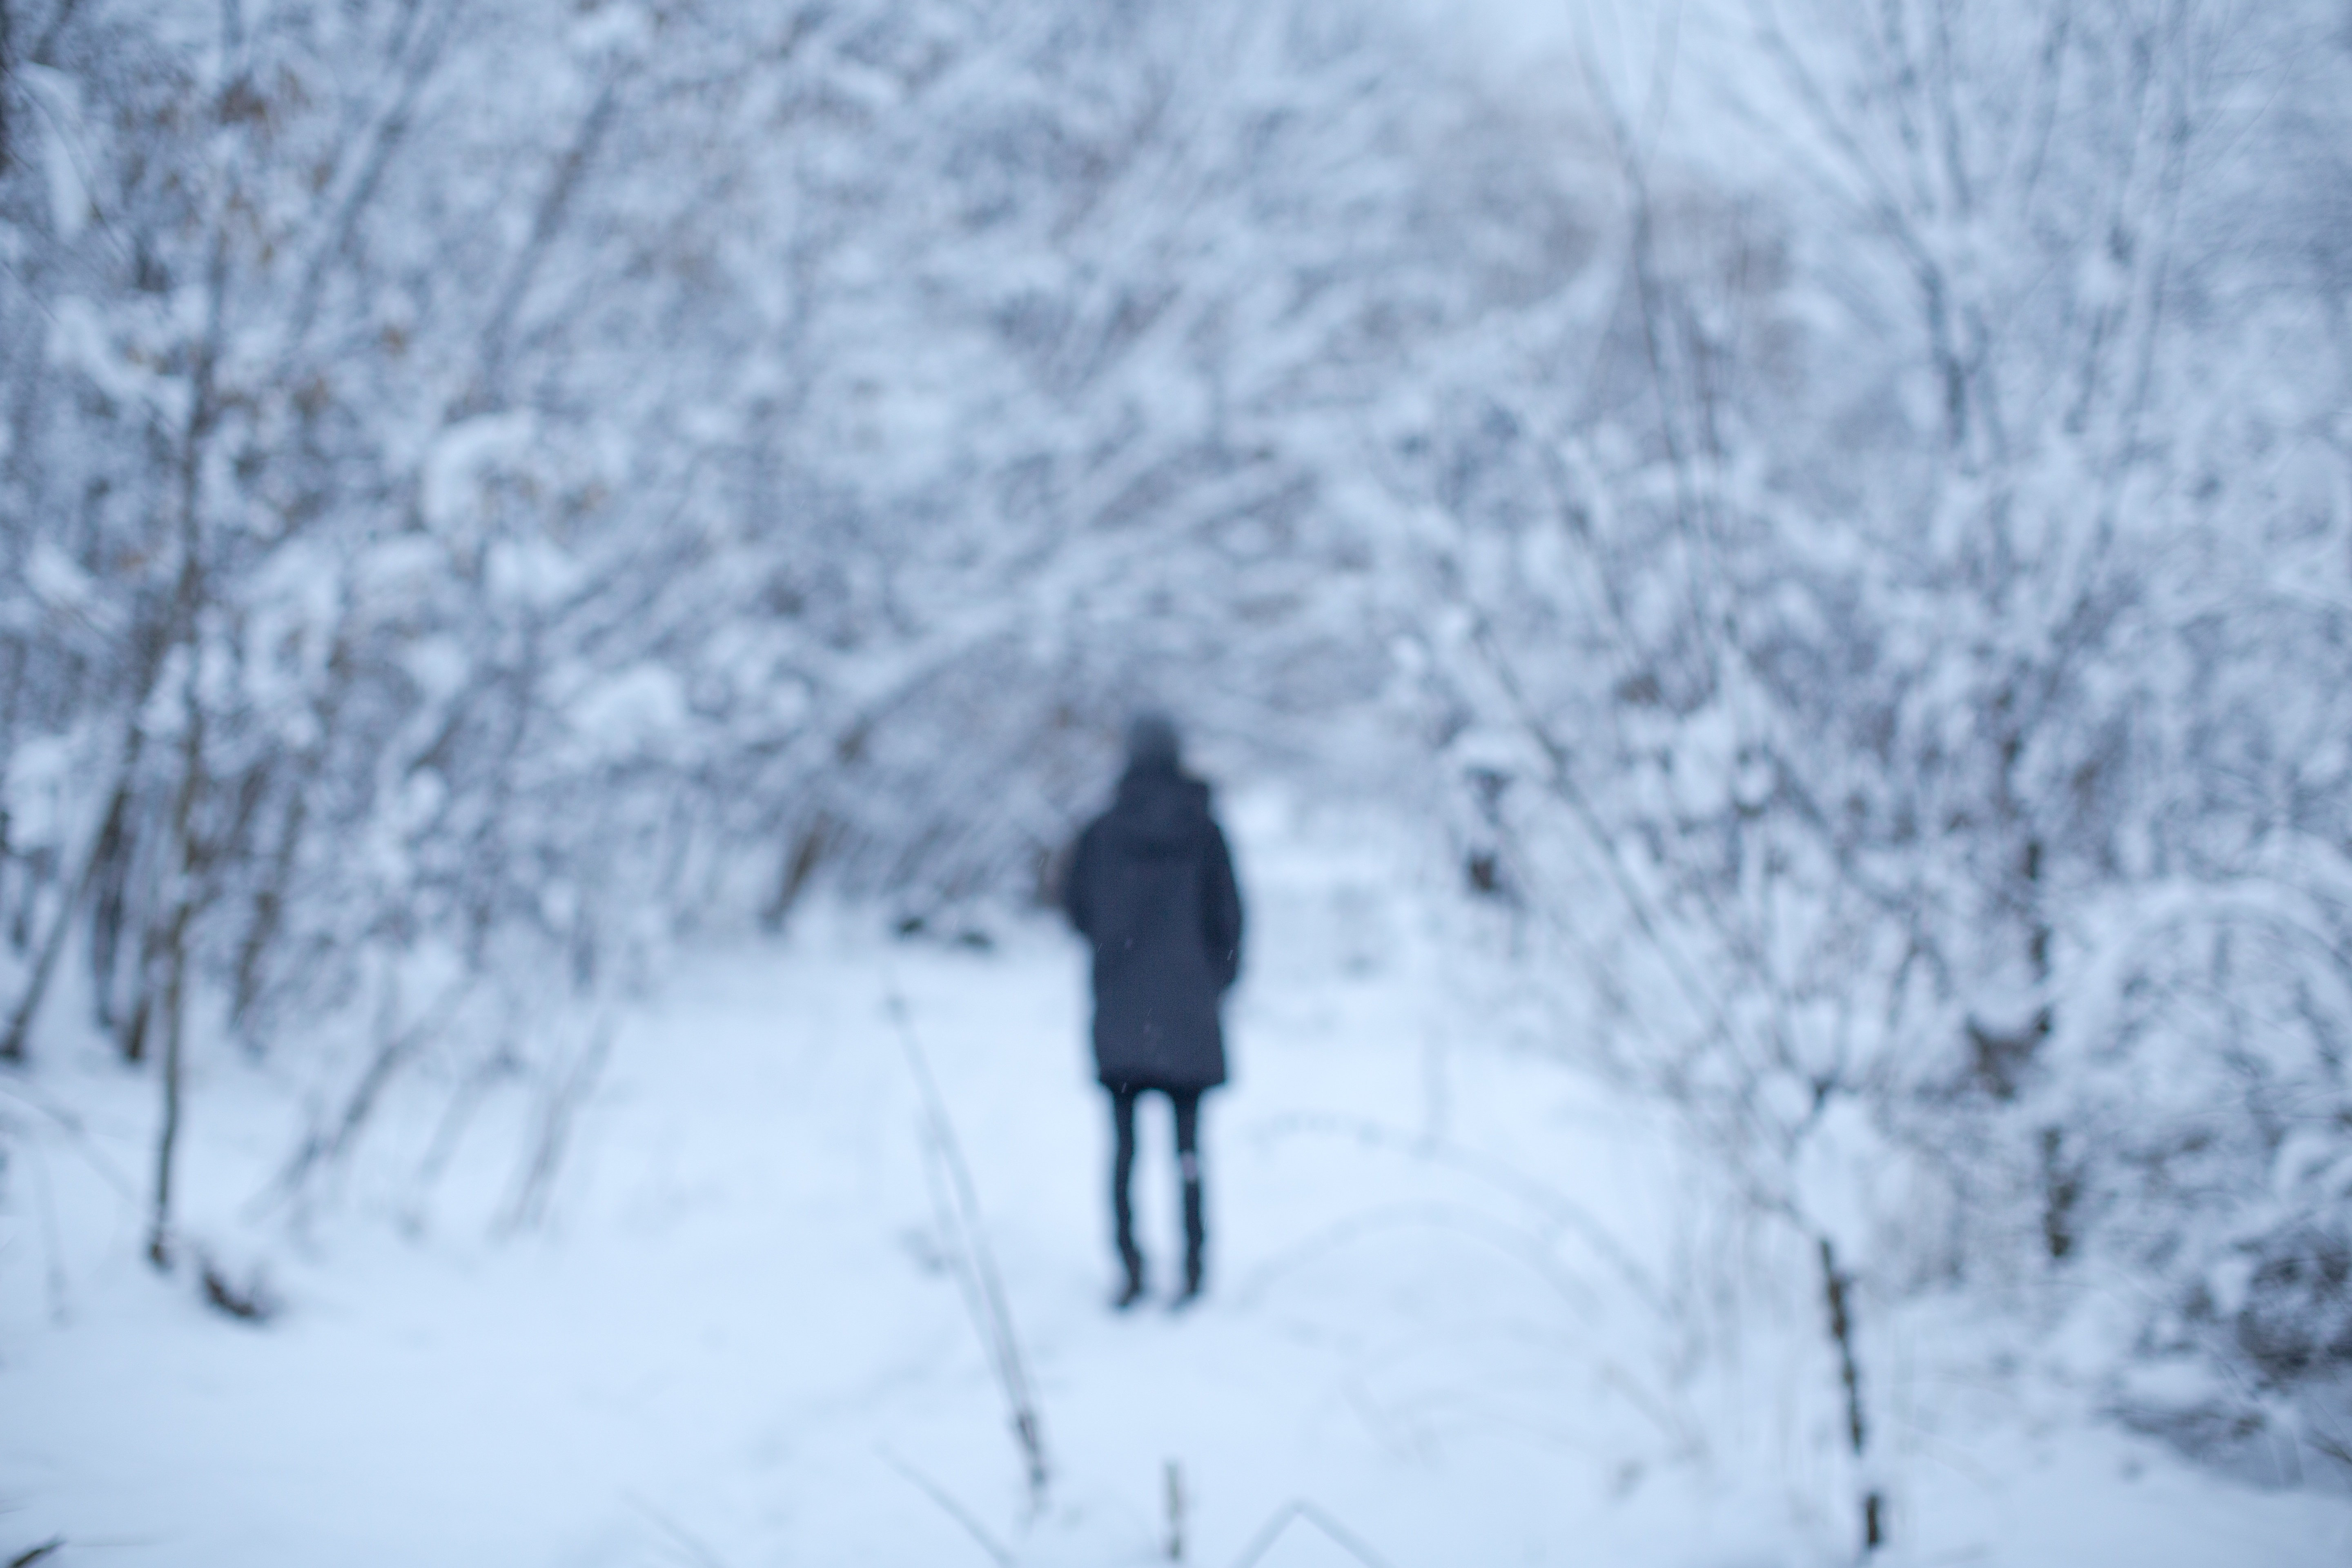 Blurred girl in snow forest example image 1